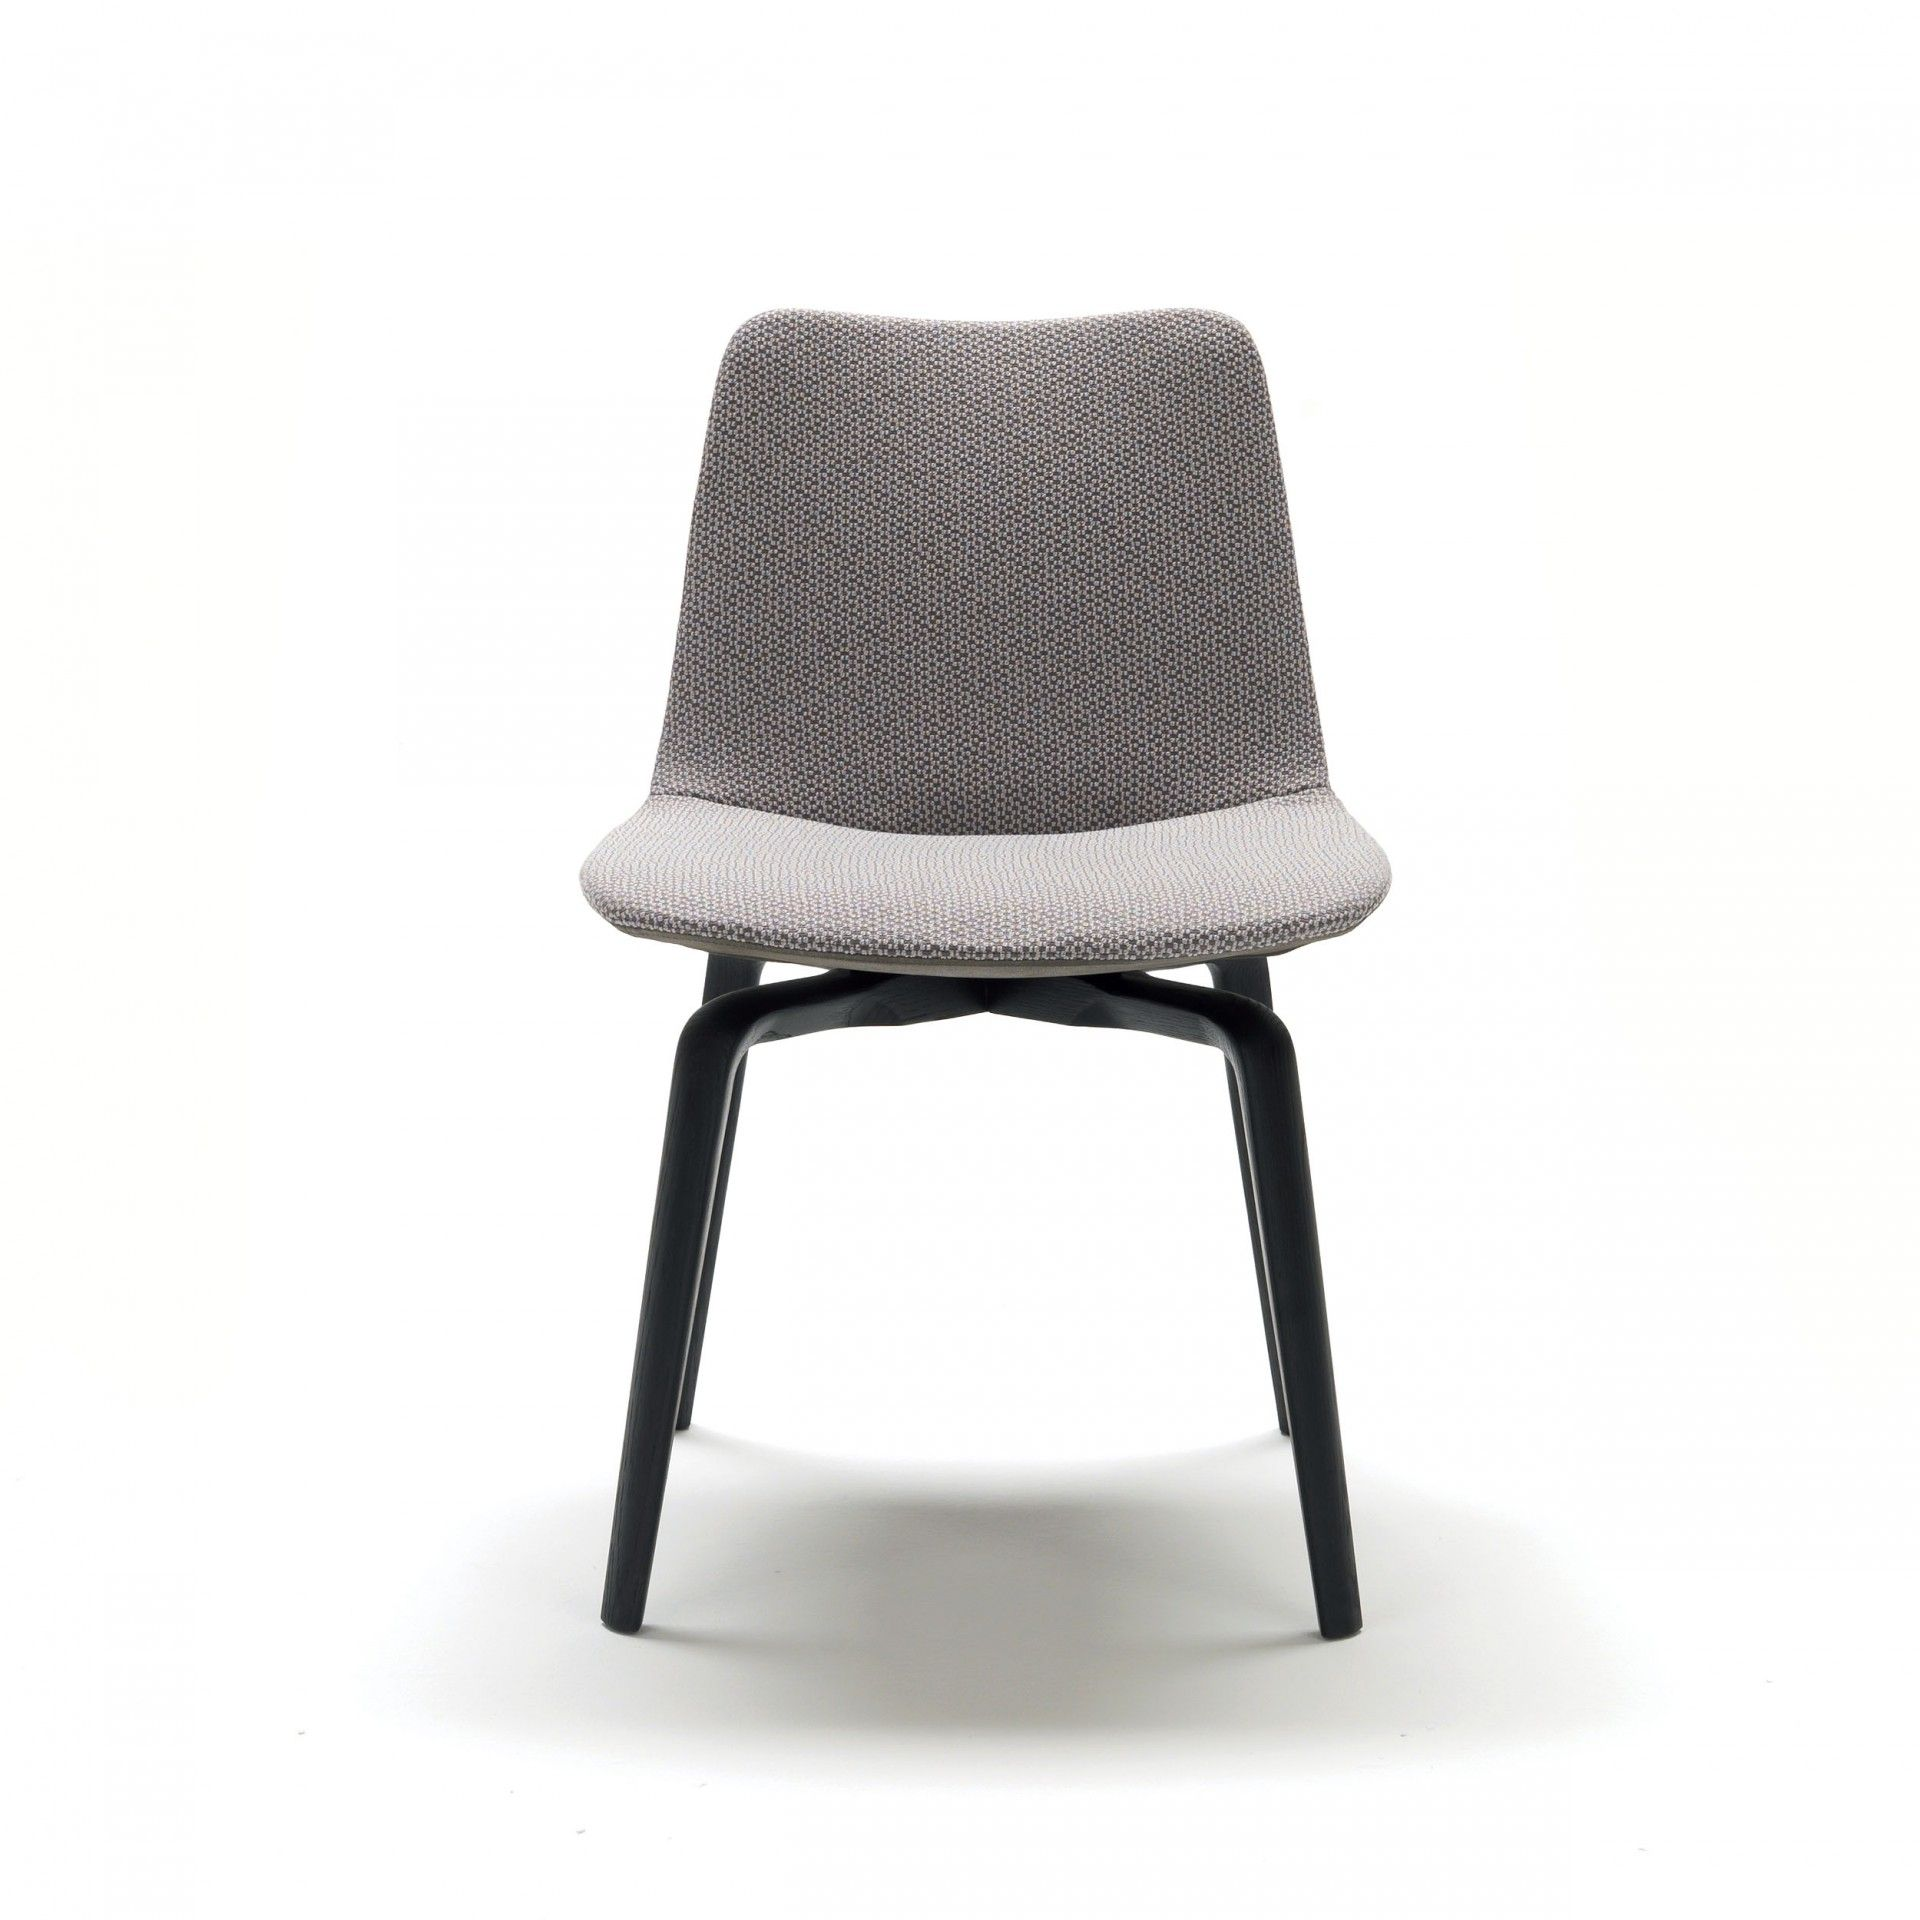 Body in cold-foamed polyurethane with non-removable cover in fabric, imitation leather and leather. The front of the chair can be covered in a different textile to the rear.